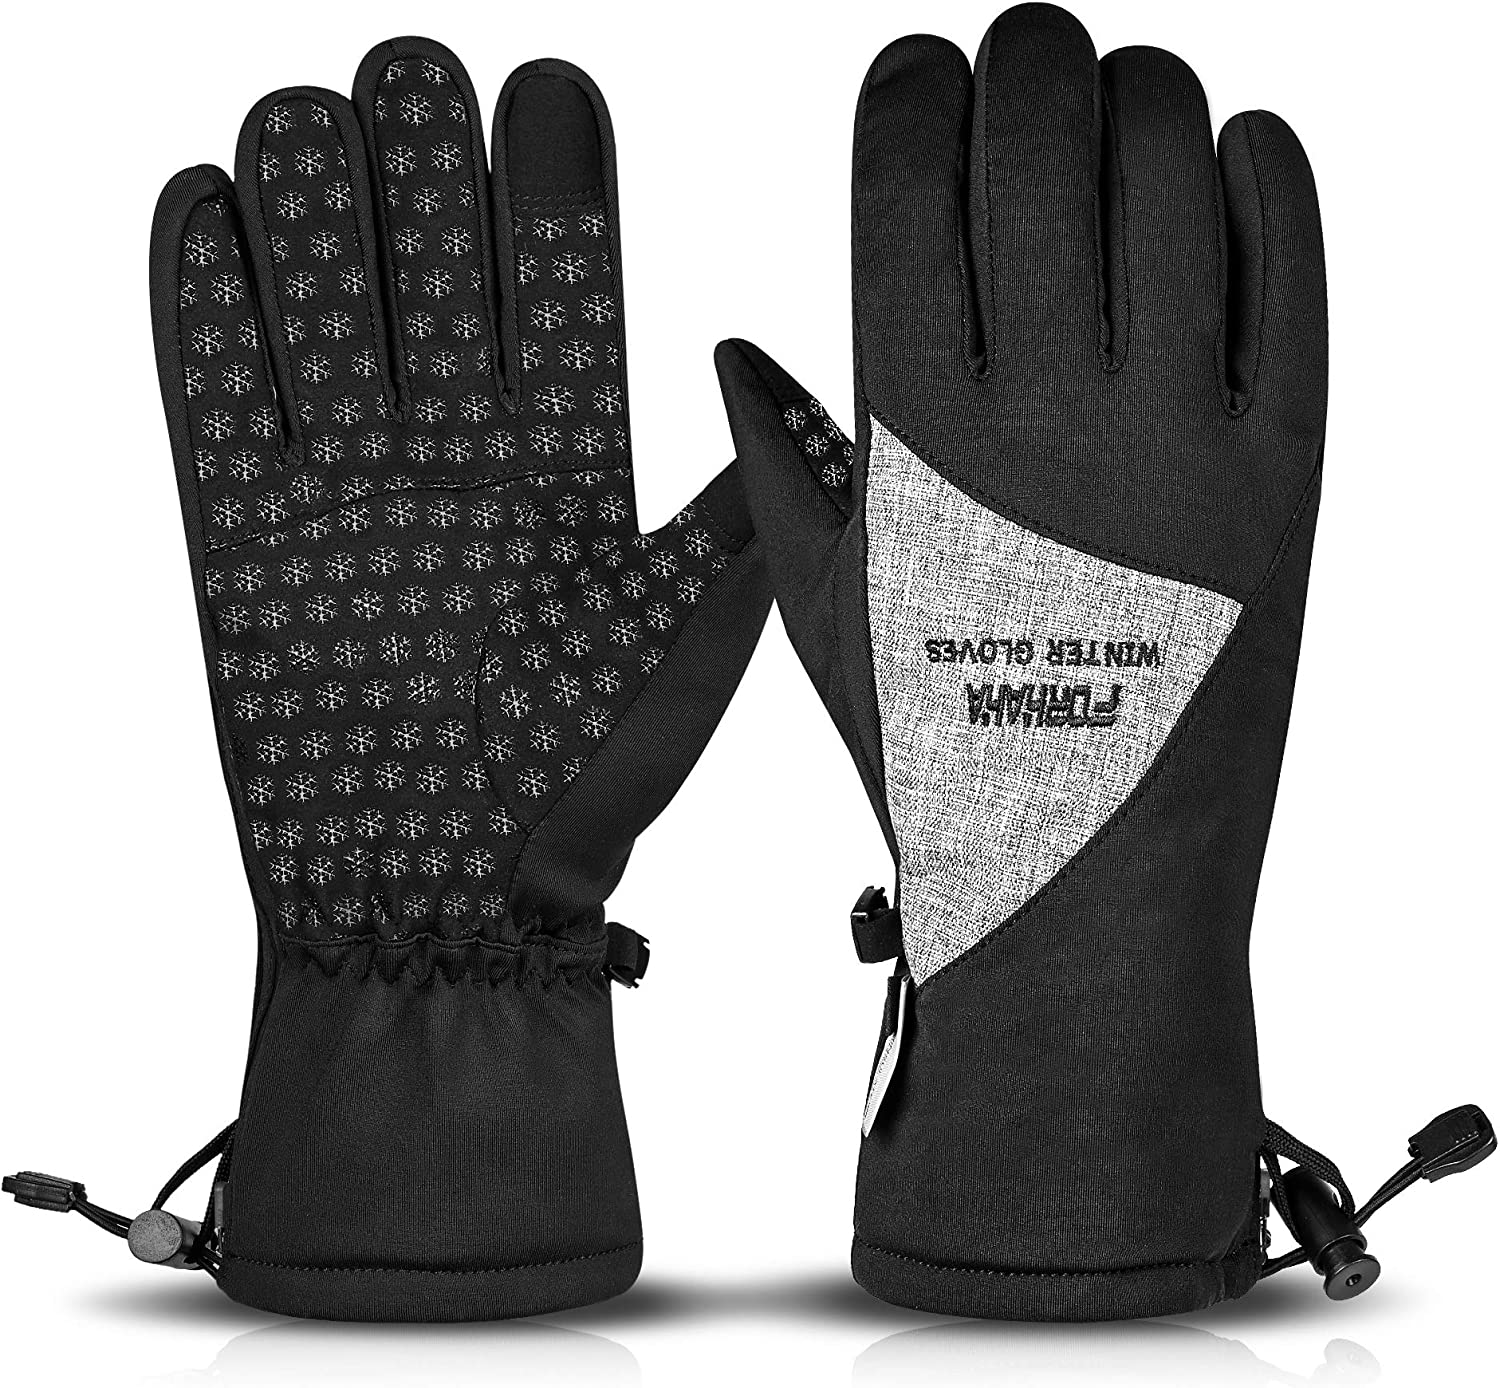 Forhaha Winter Gloves, Touchscreen Thermal Gloves Waterproof for Men and Women